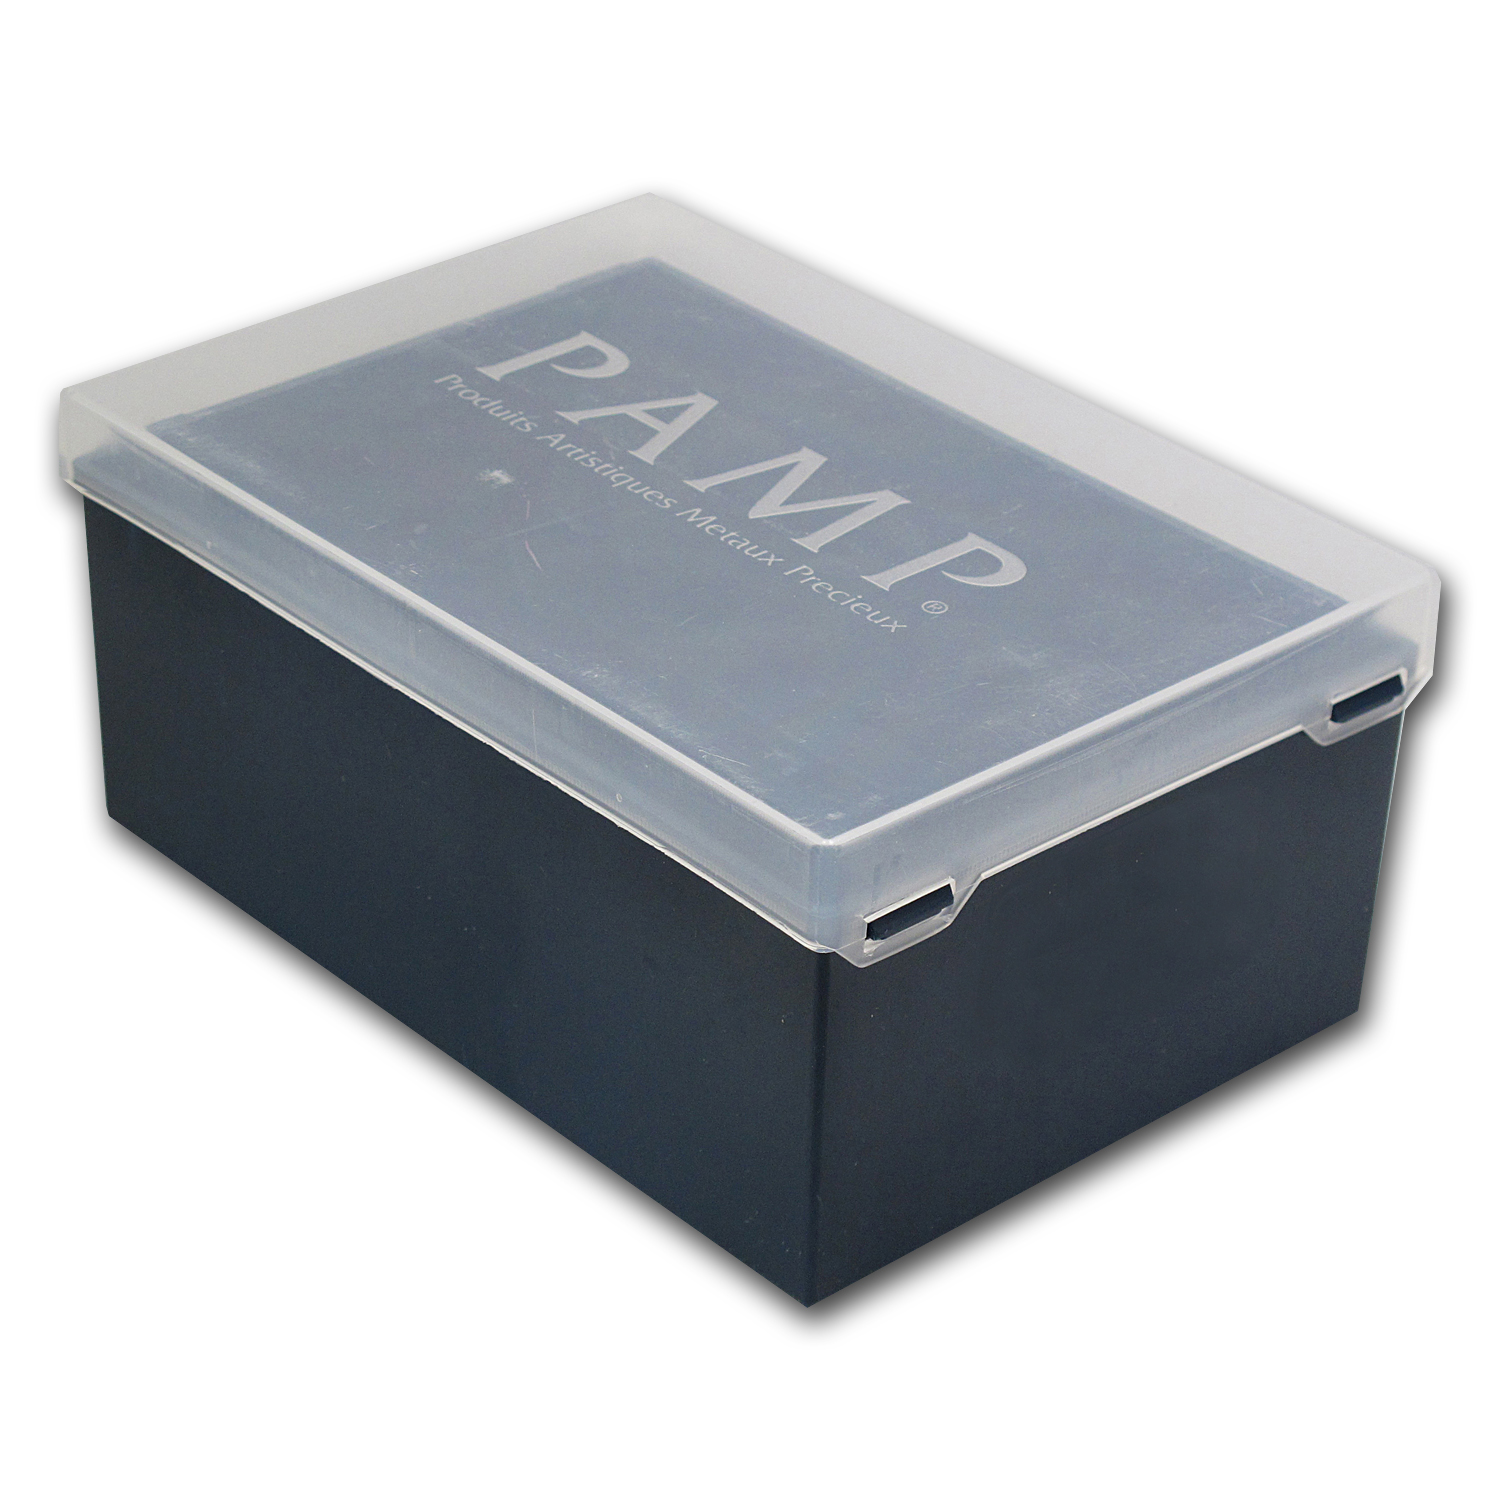 Empty Pamp 500 - 1000 gram Silver Bar Plastic Storage Box (Used)